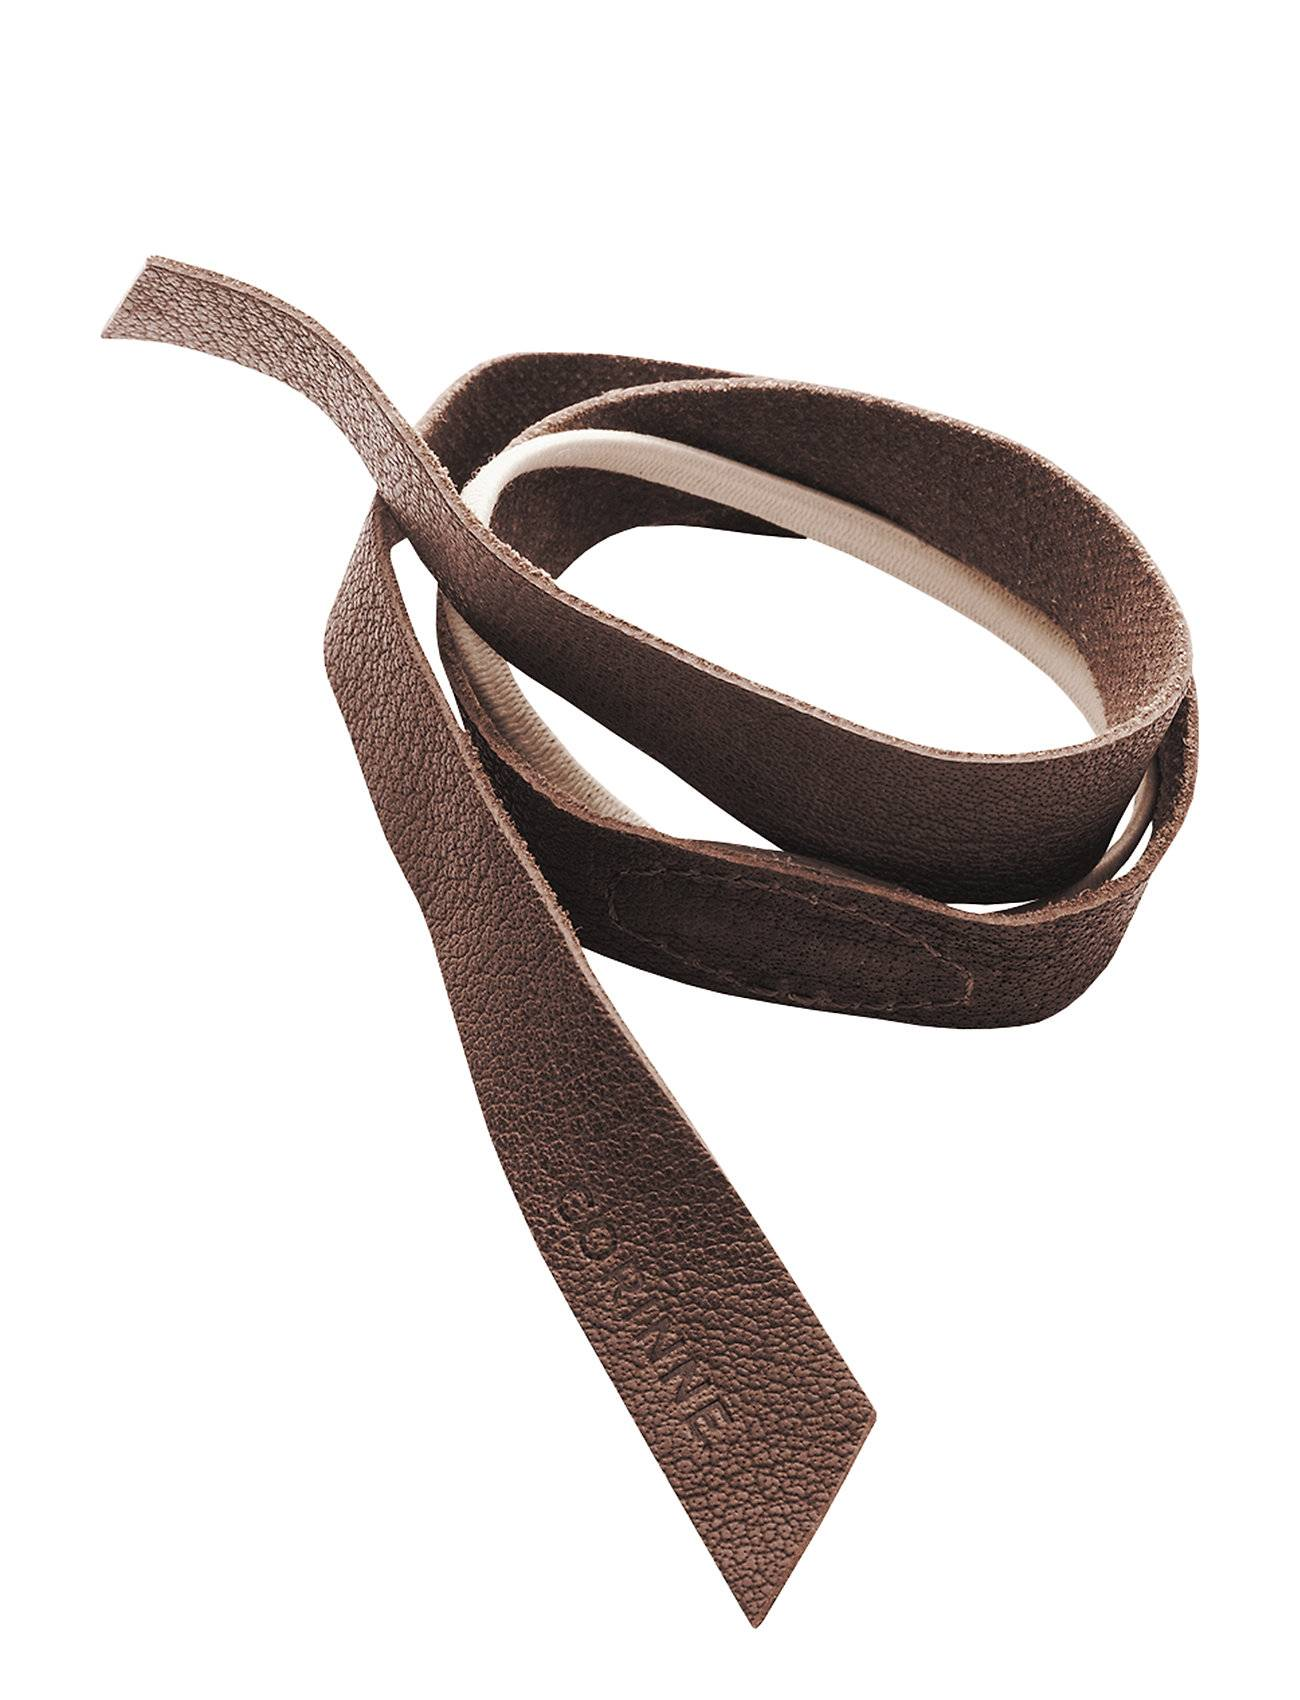 Image of Corinne Leather Band Short Layer Beauty WOMEN Hair Accessories Hair Accessories Ruskea Corinne